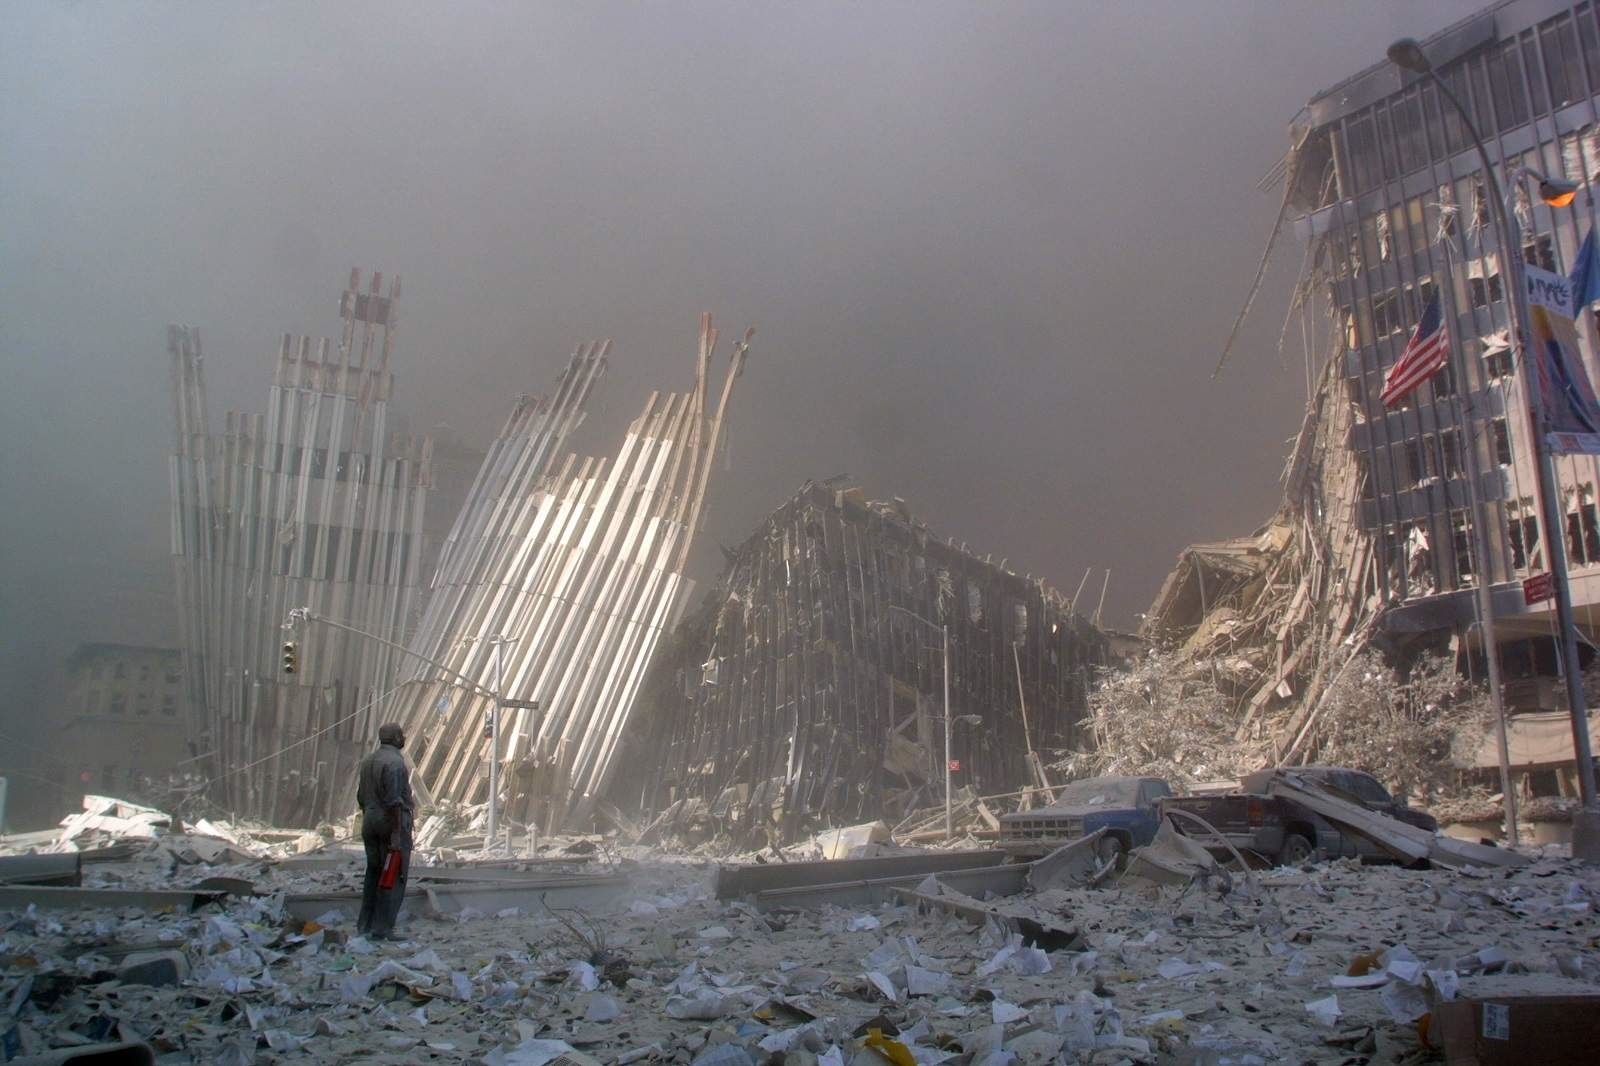 A man calls out asking if anyone needs help after the collapse of the first World Trade Centre tower, New York City, 11 September 2001 (Doug Kanter/AFP via Getty Images)